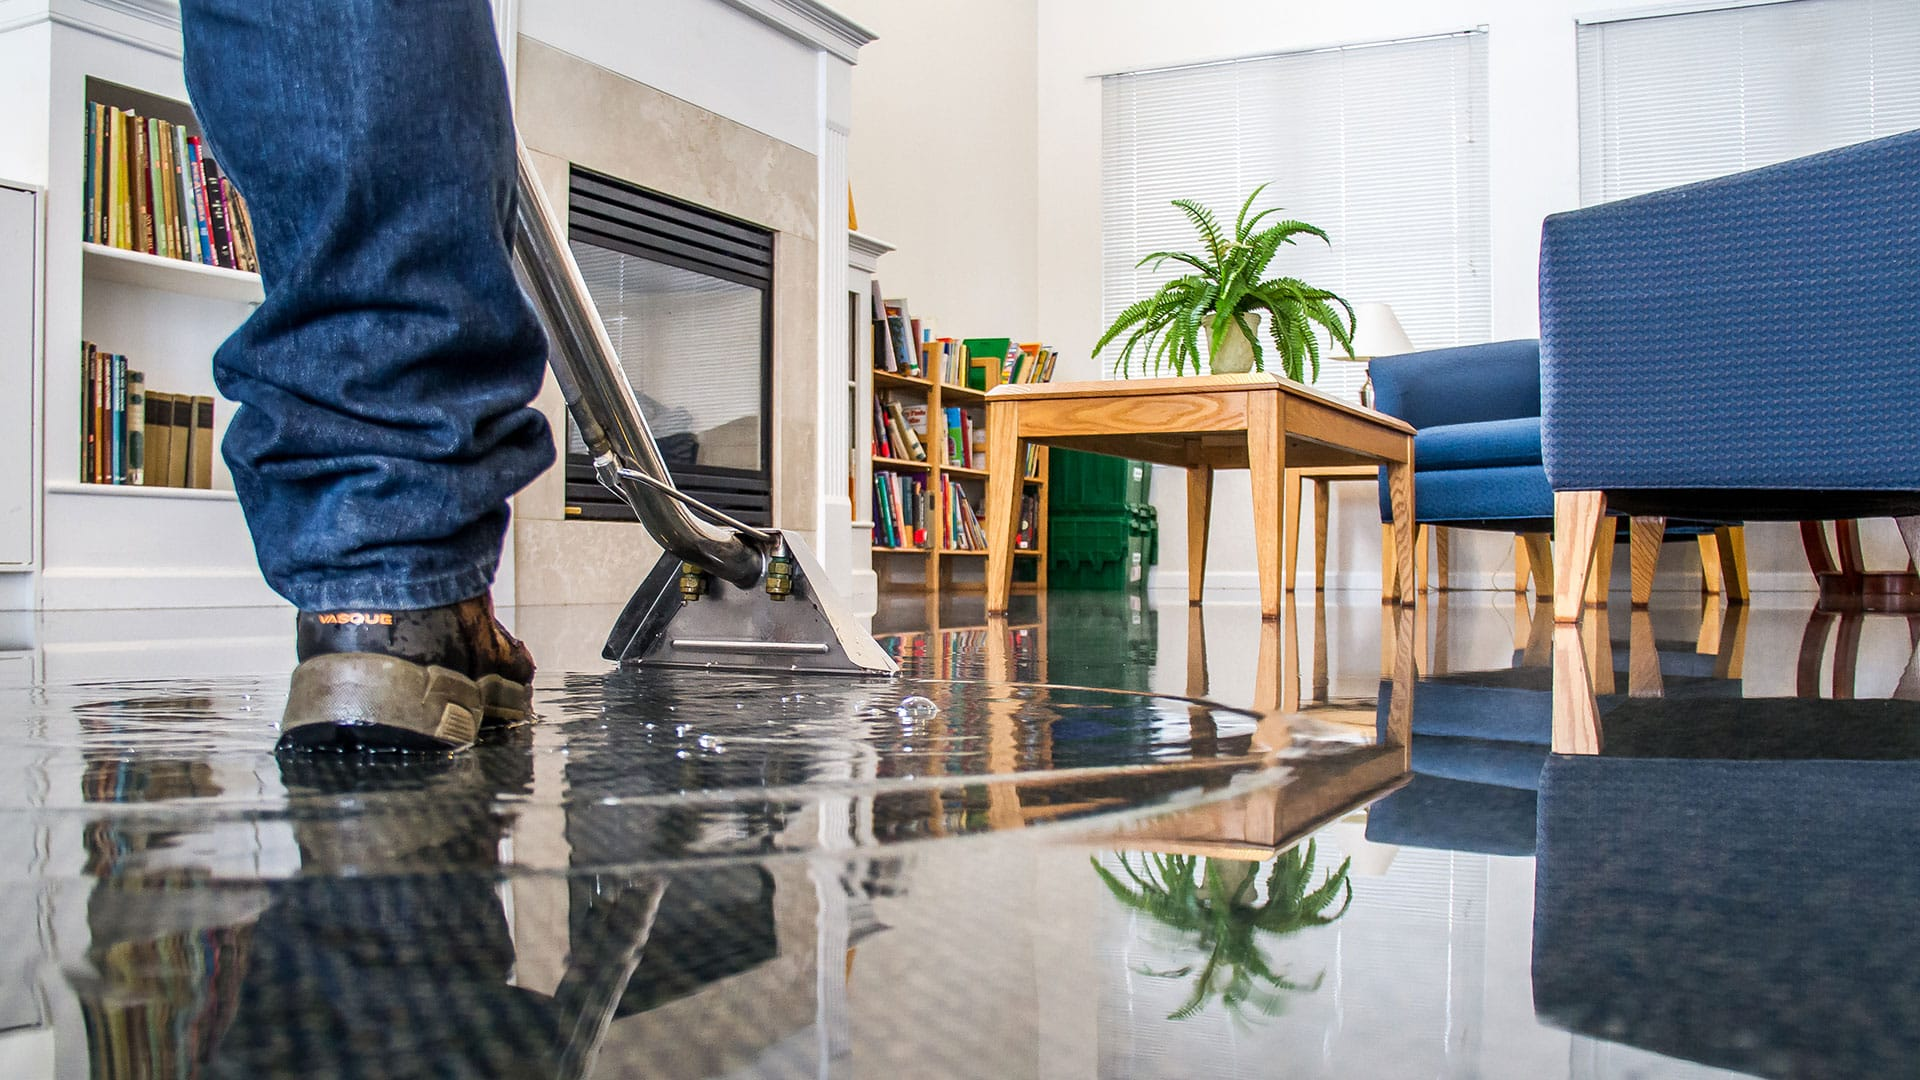 Need To Designate A Professional For Carpet Water Damage Restoration Assistance